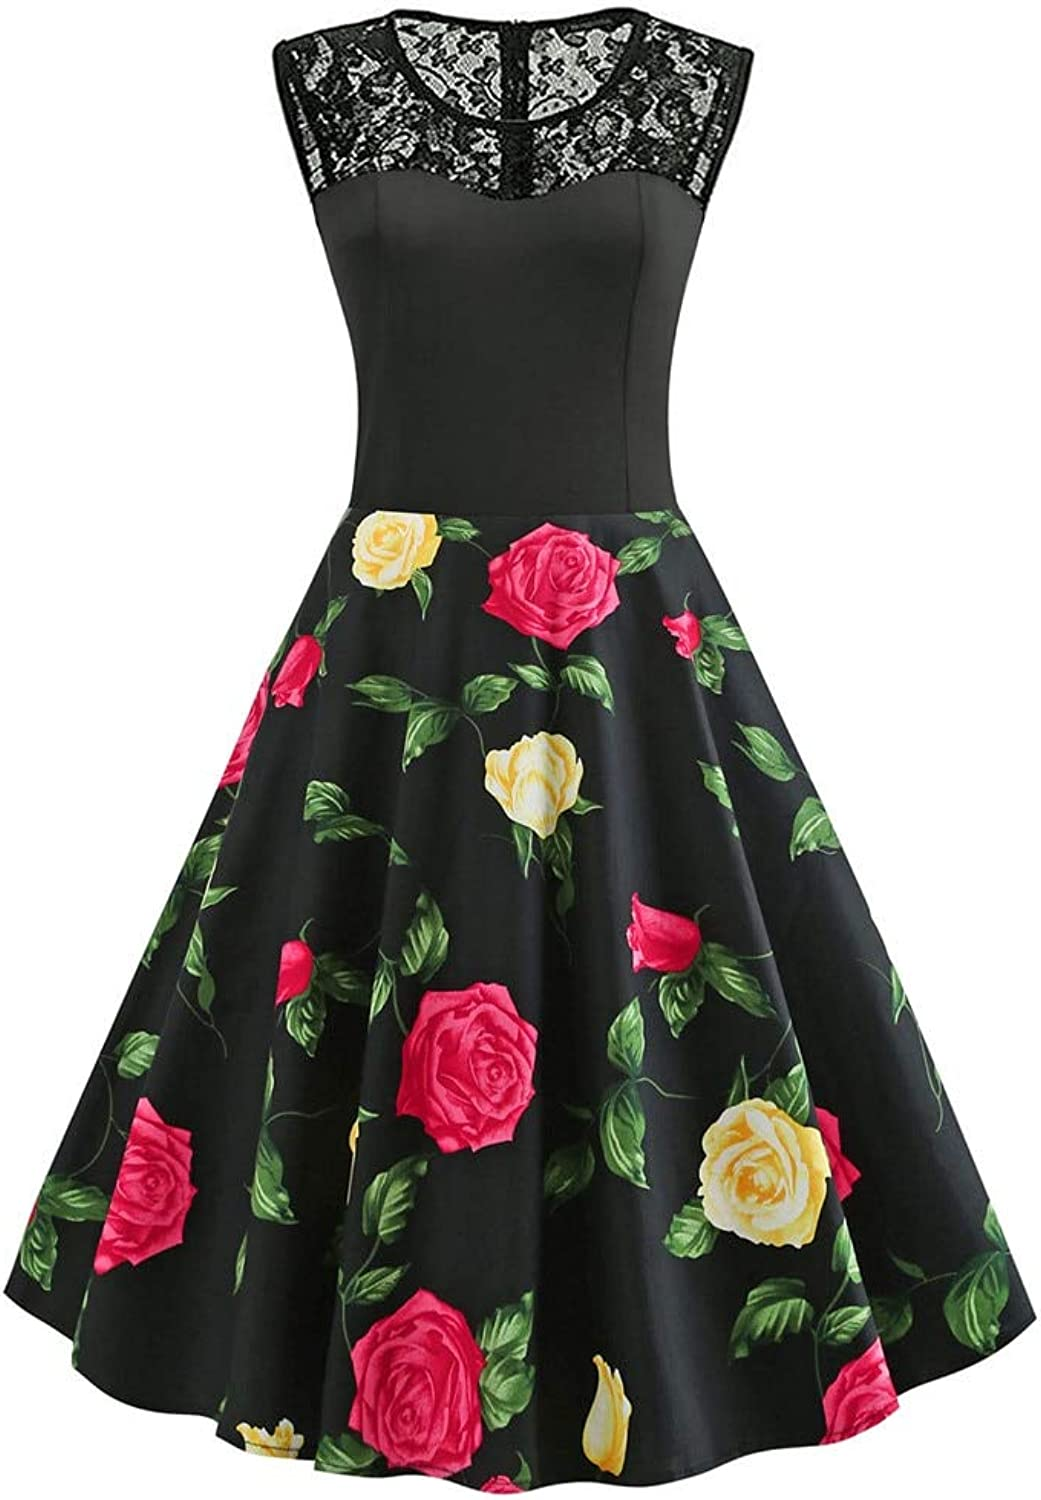 FUZHUANGHM pink Floral Print Lace Party Round Neck Sleeveless Rockabilly Swing Women Vintage Dress Retro Dress Robe Tunic